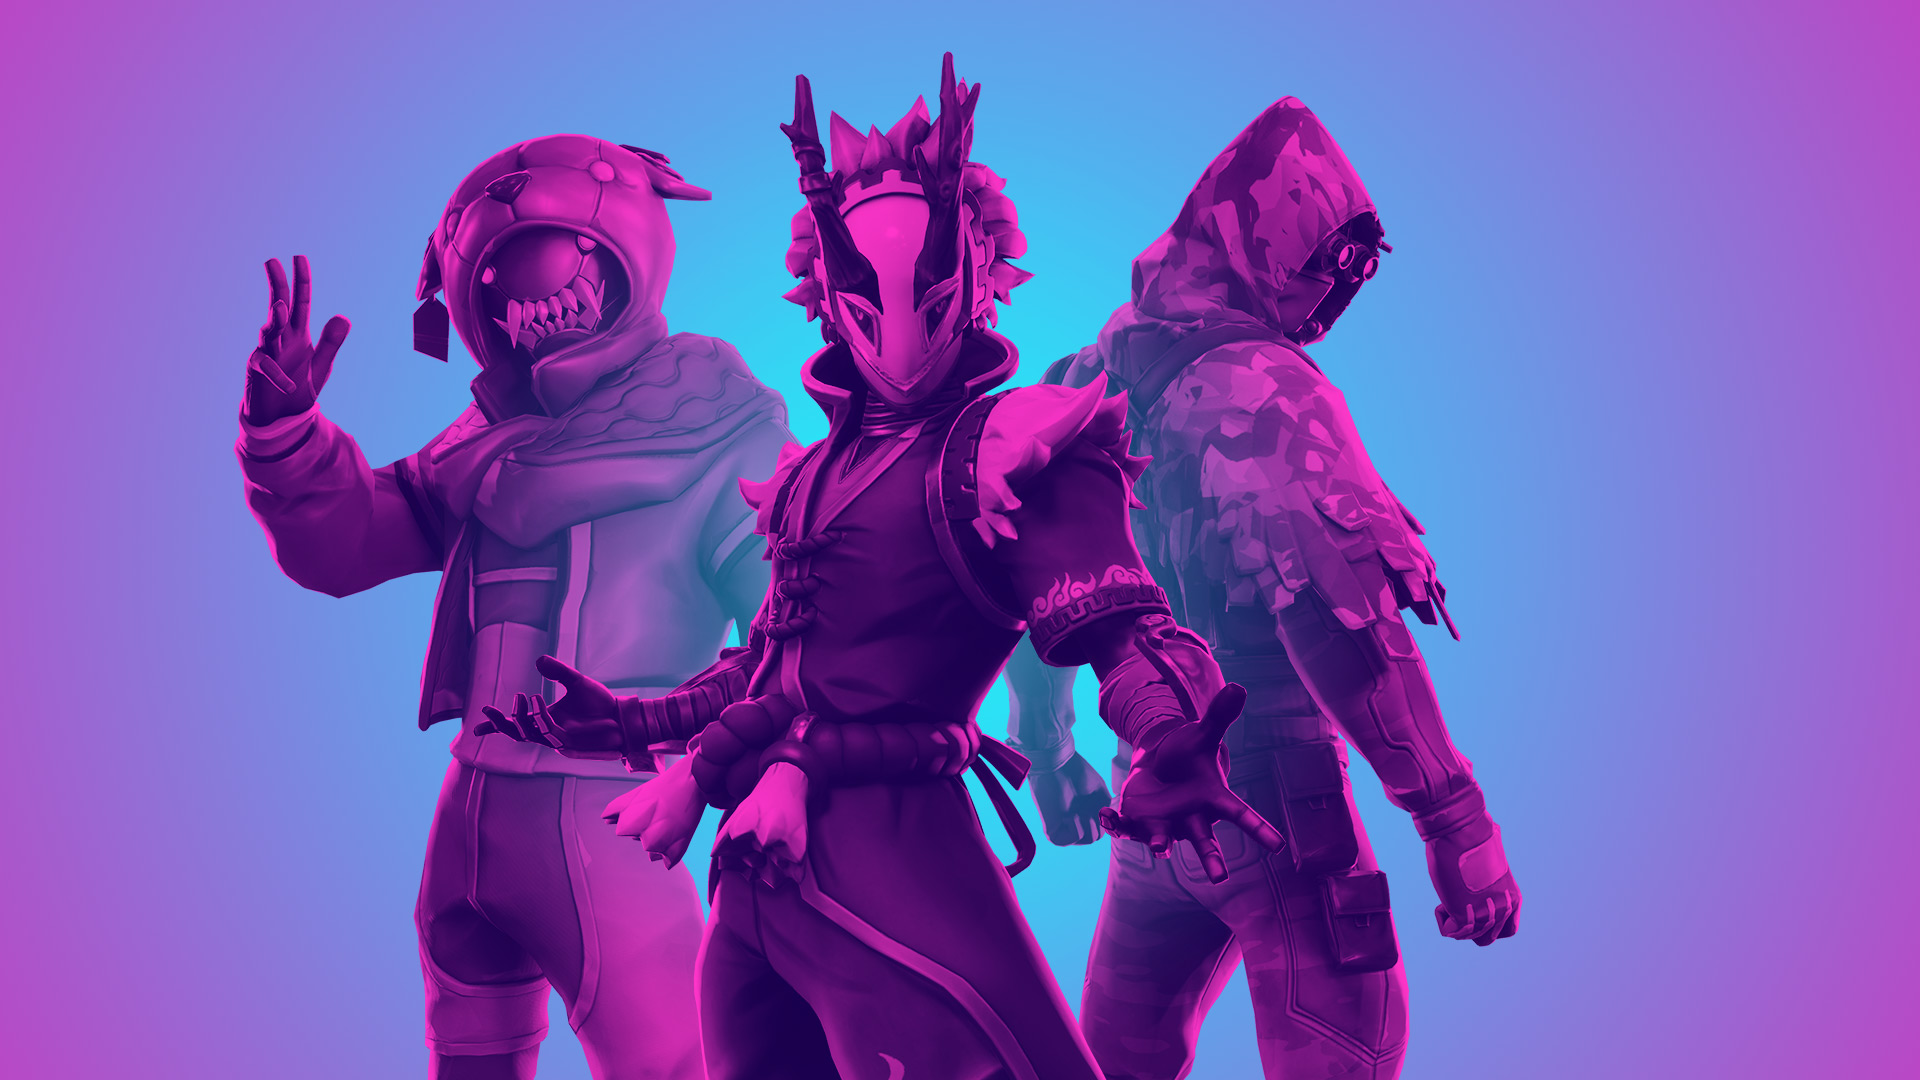 fortnite pro players complain about stretched resolution changes to competitive modes - fortnite trading ratios